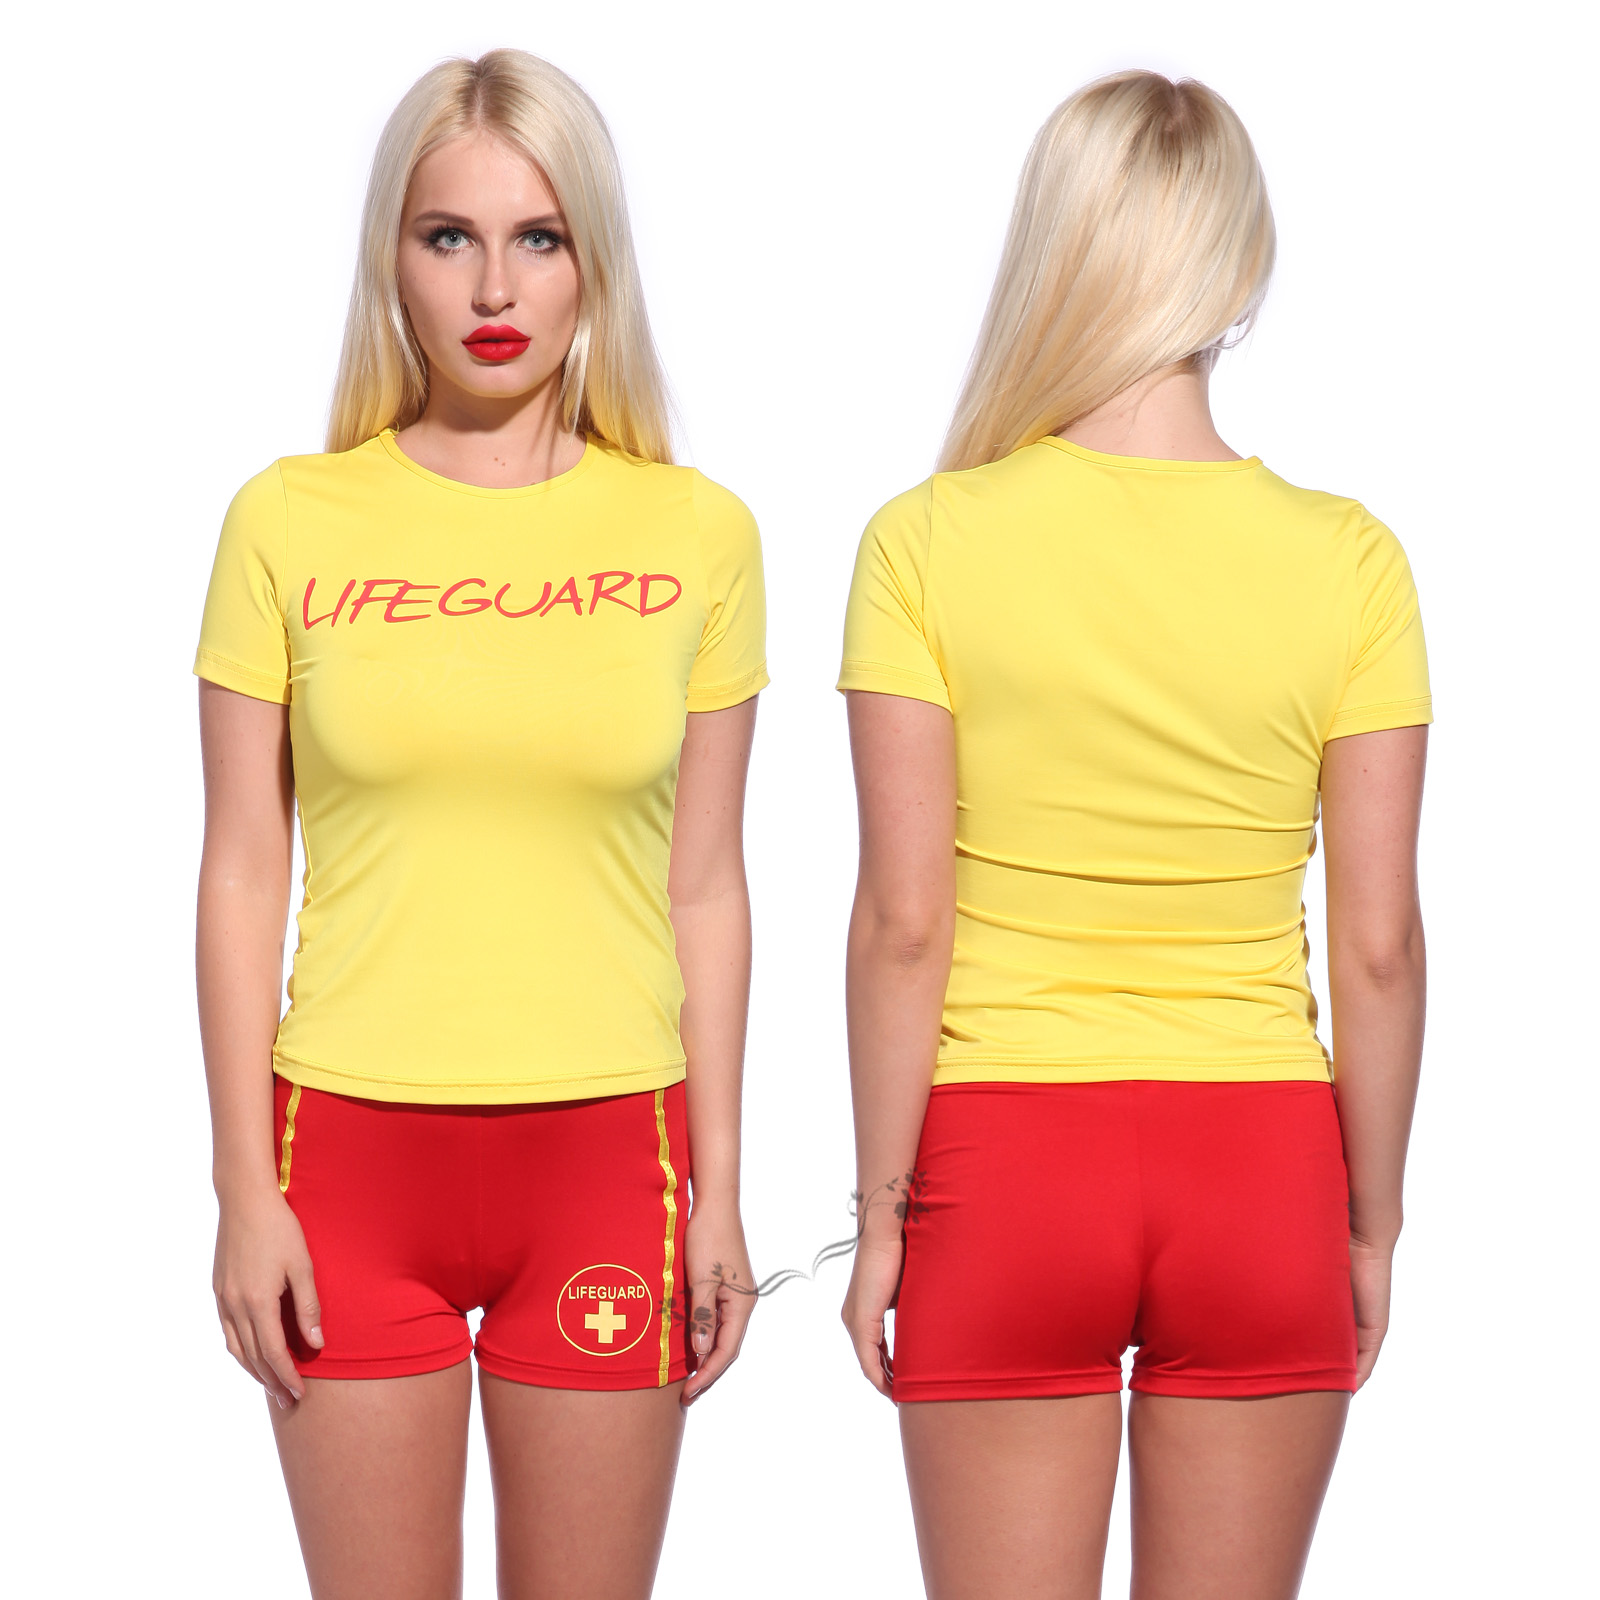 Male Female Lifeguard Life Saver Baywatch Uniform Red And  sc 1 st  Meningrey & Lifeguard Costume Womens - Meningrey